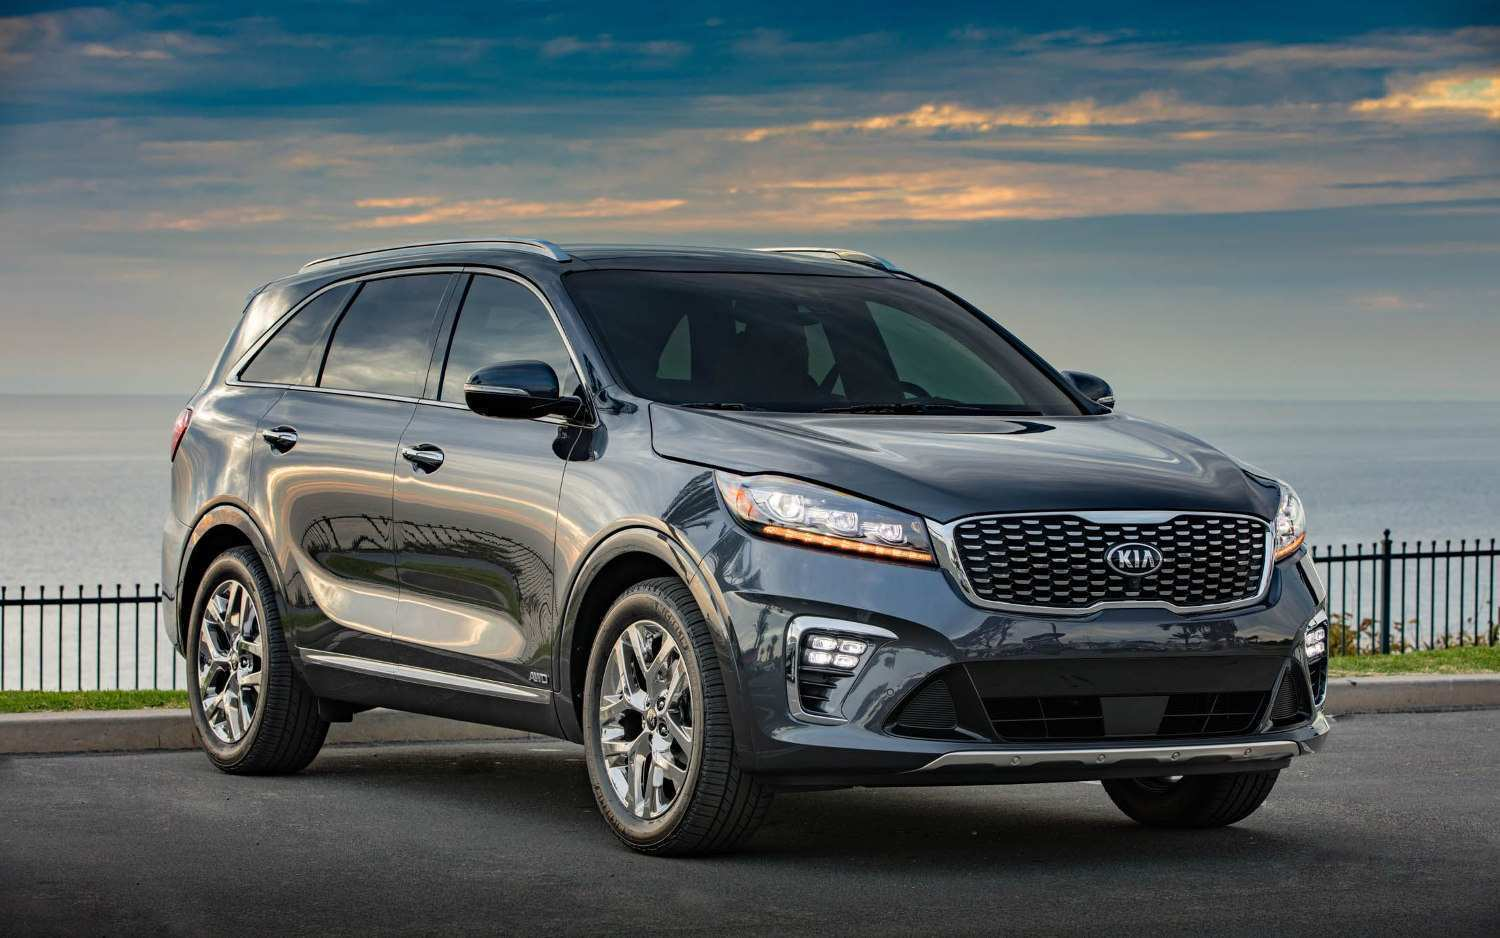 56 Gallery of New 2019 Kia Sorento Vs Subaru Ascent Release Date And Specs Research New by New 2019 Kia Sorento Vs Subaru Ascent Release Date And Specs